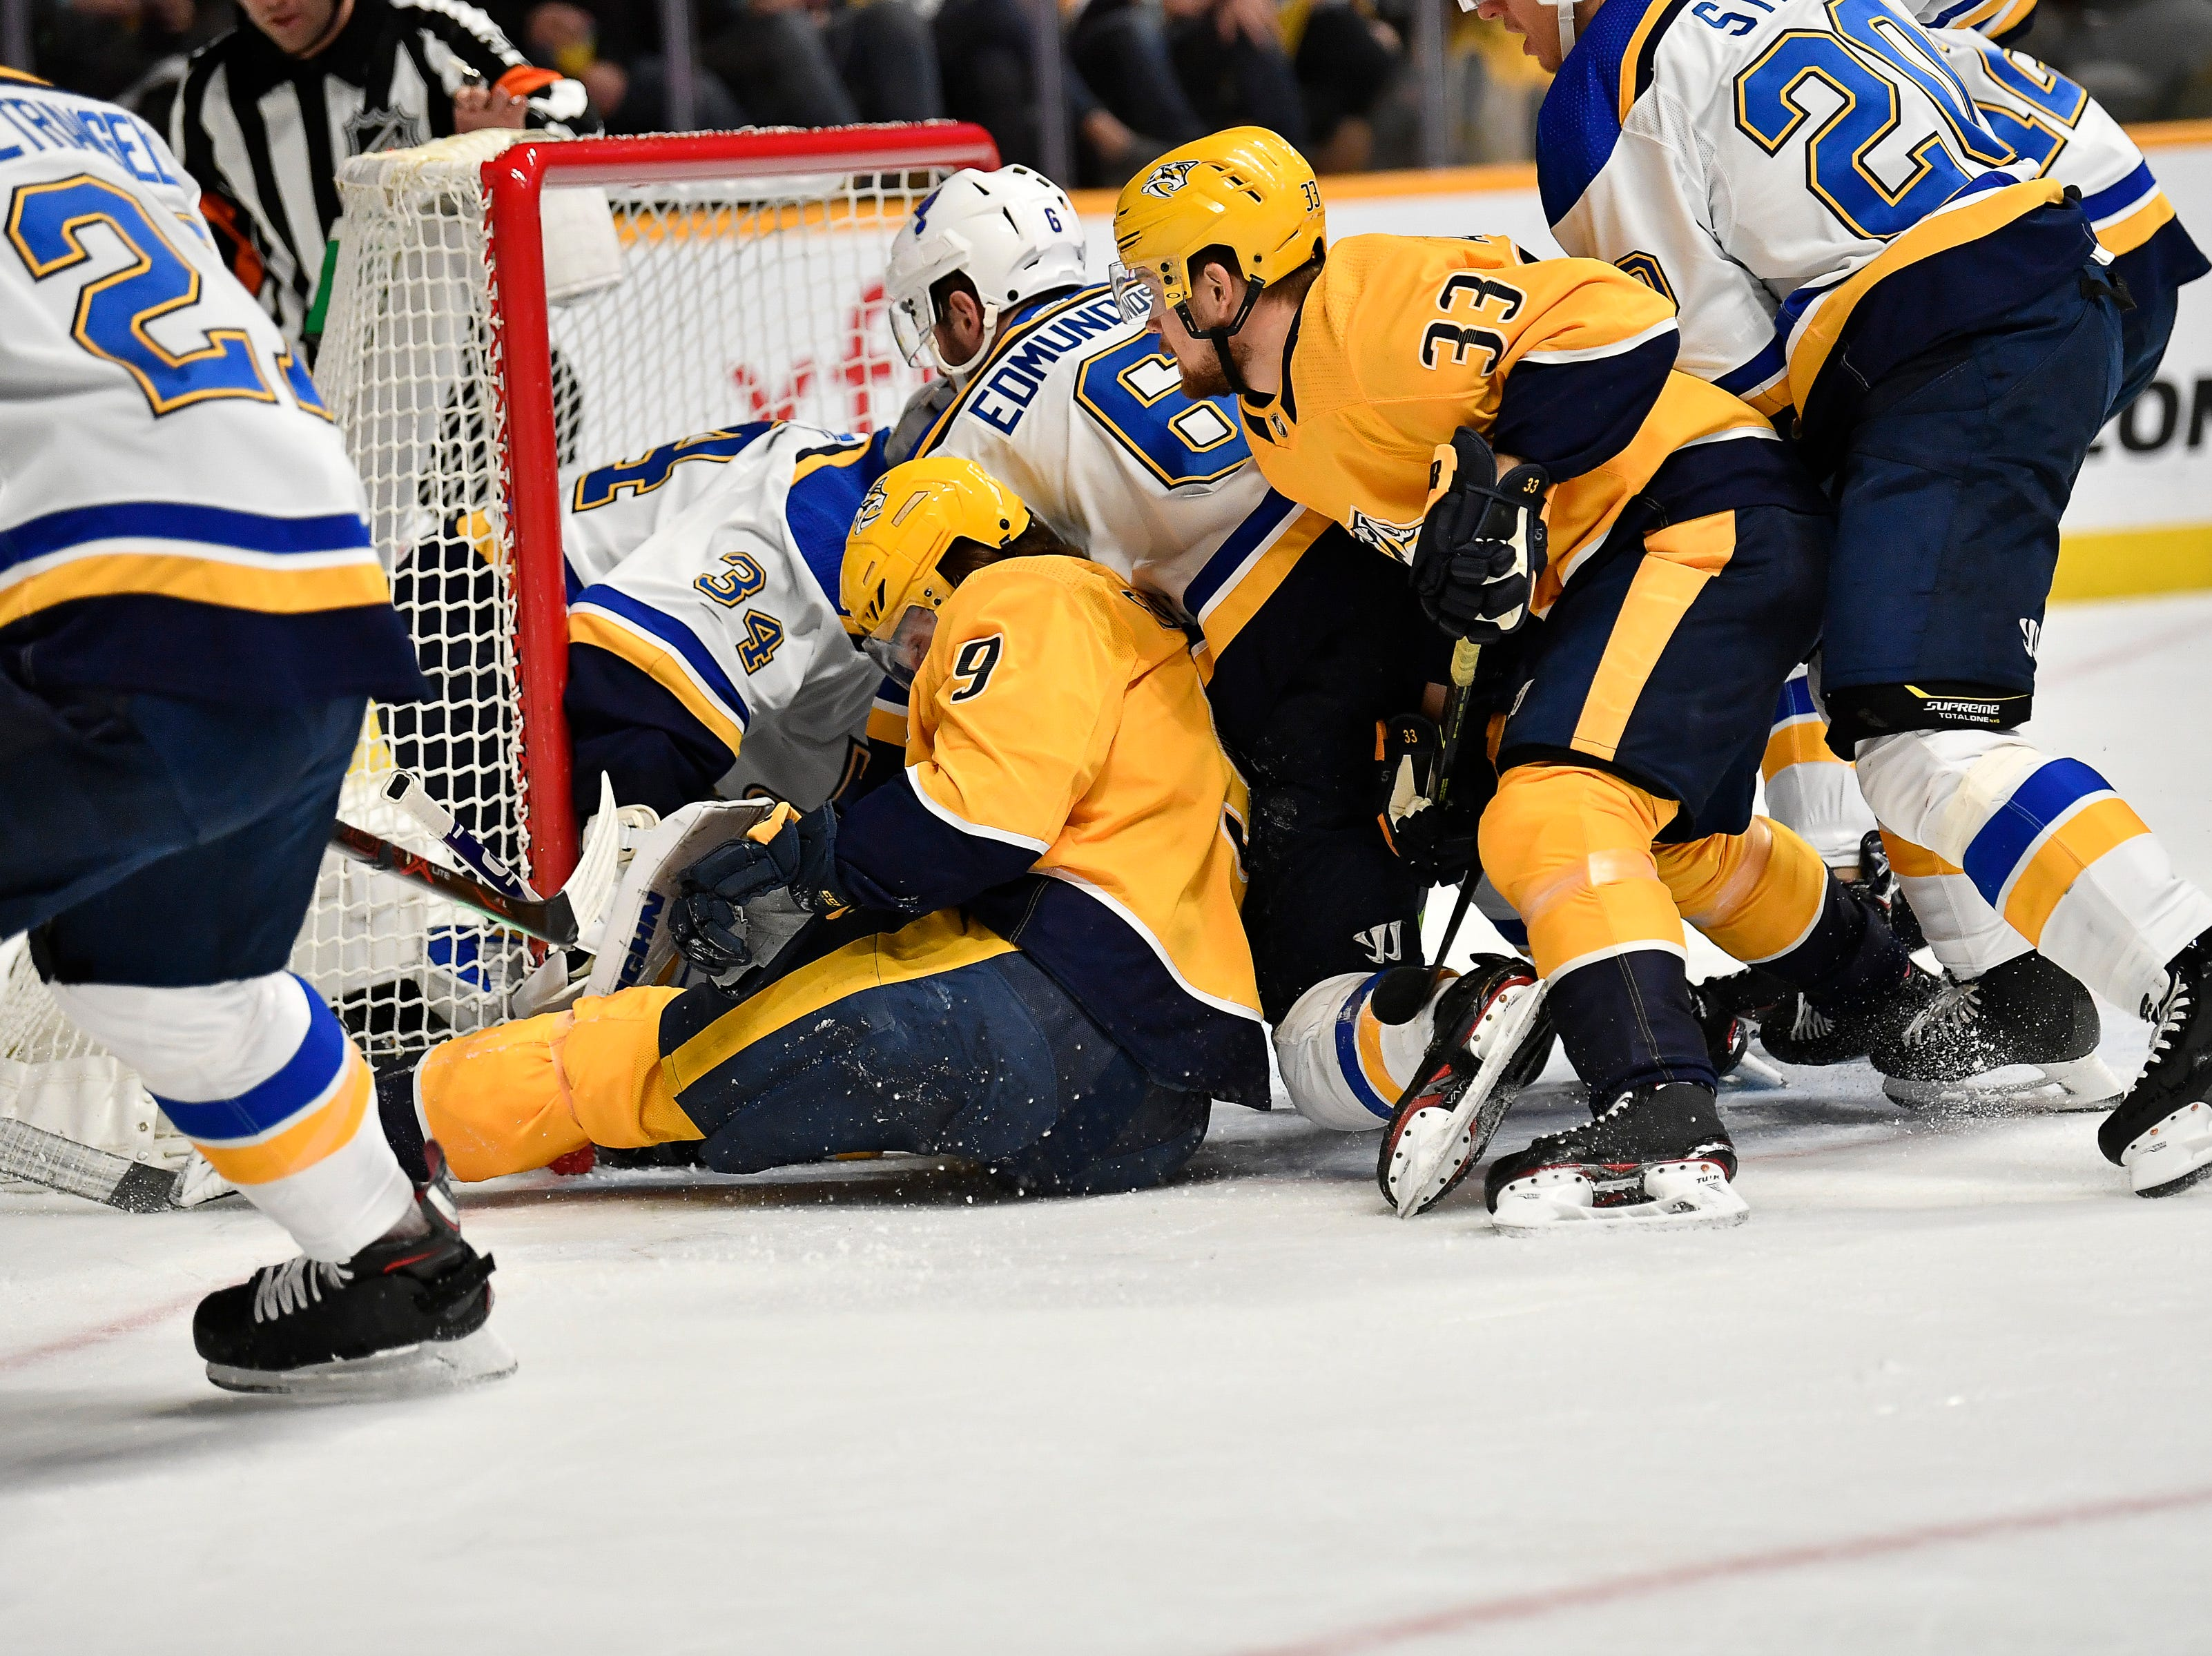 Predators left wing Filip Forsberg (9) and right wing Viktor Arvidsson (33) crash the Blues net during the first period at Bridgestone Arena Sunday Feb. 10, 2019 in Nashville, Tenn.